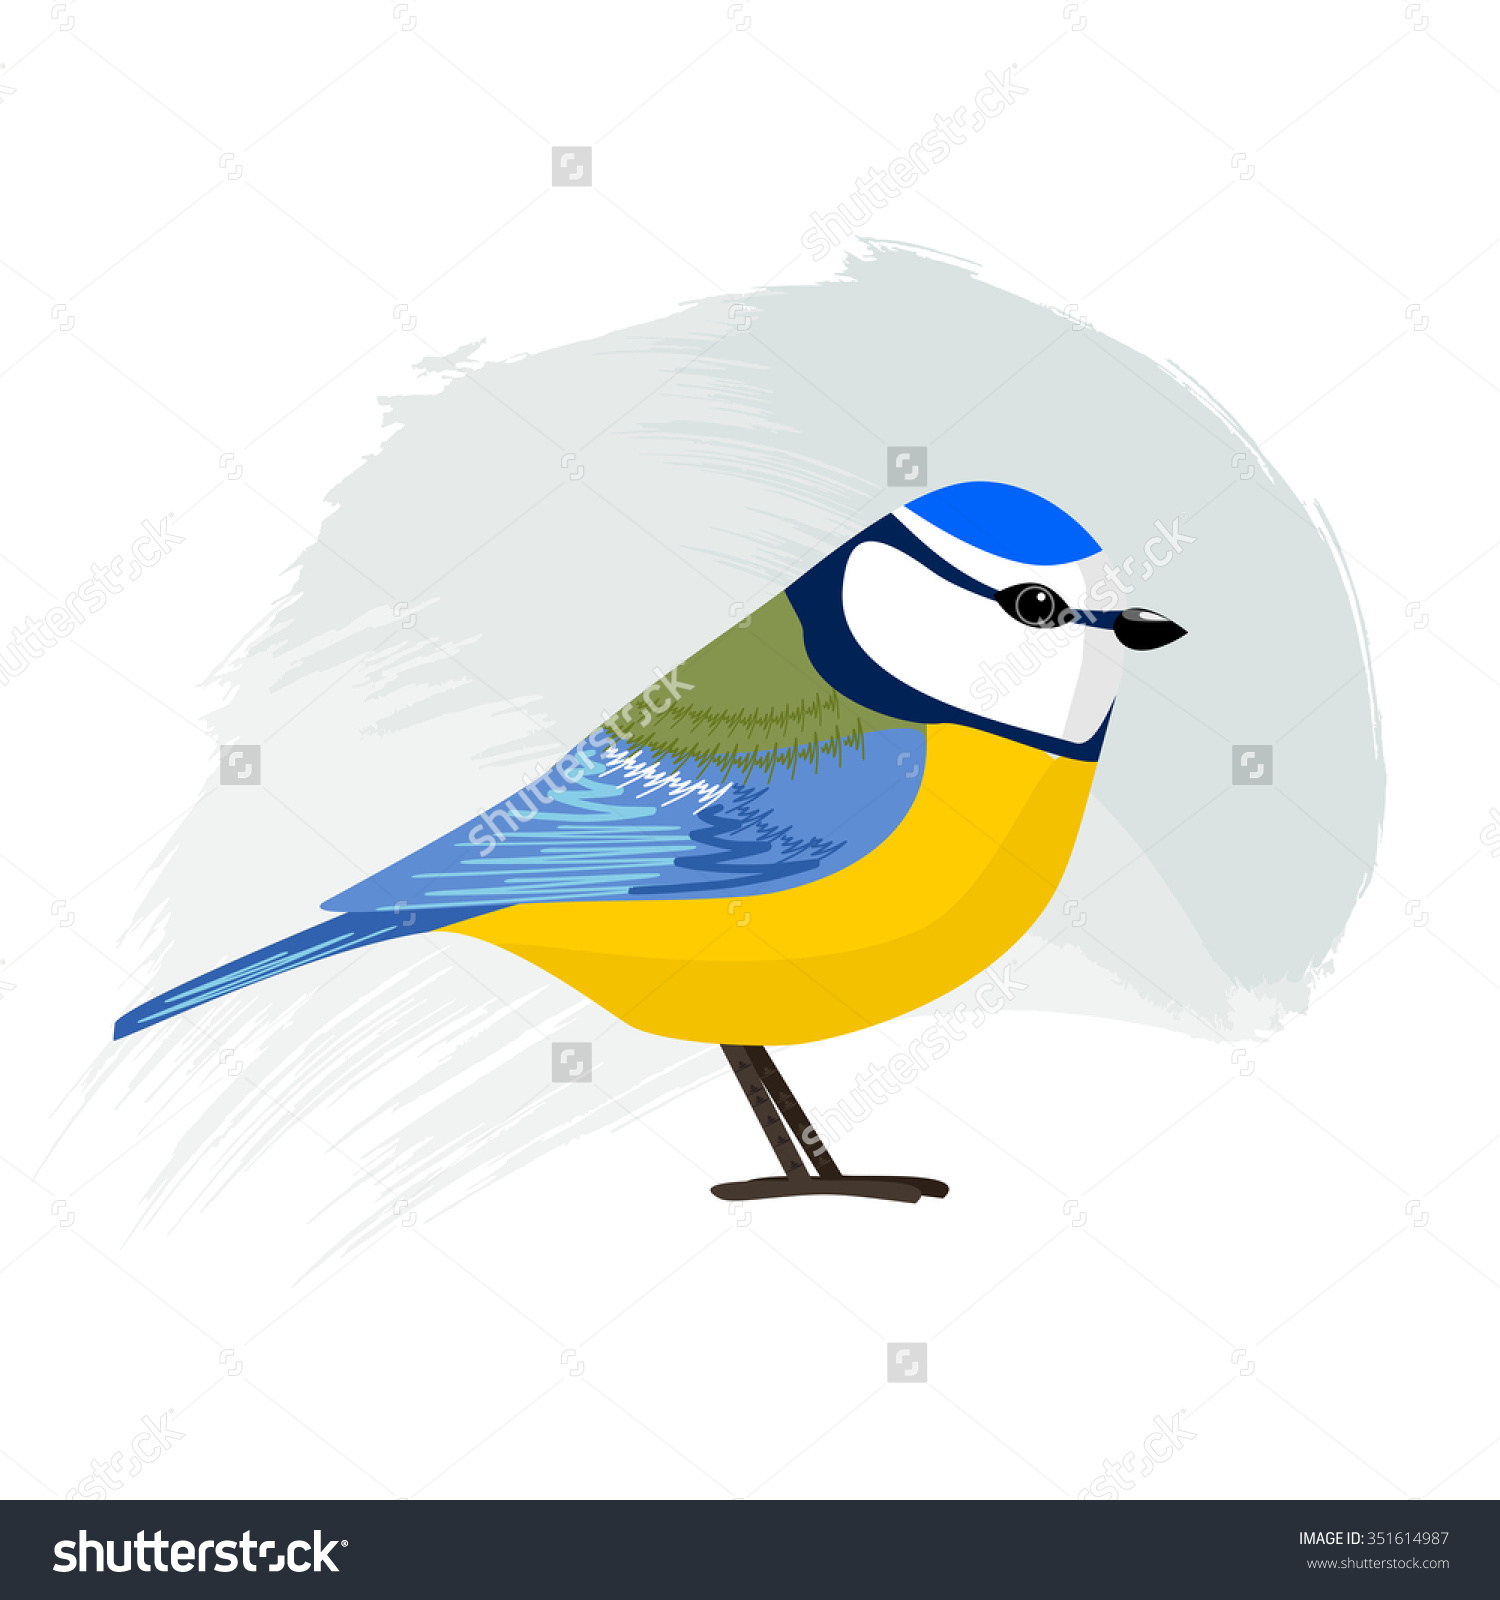 Eurasian Blue Tit clipart #5, Download drawings